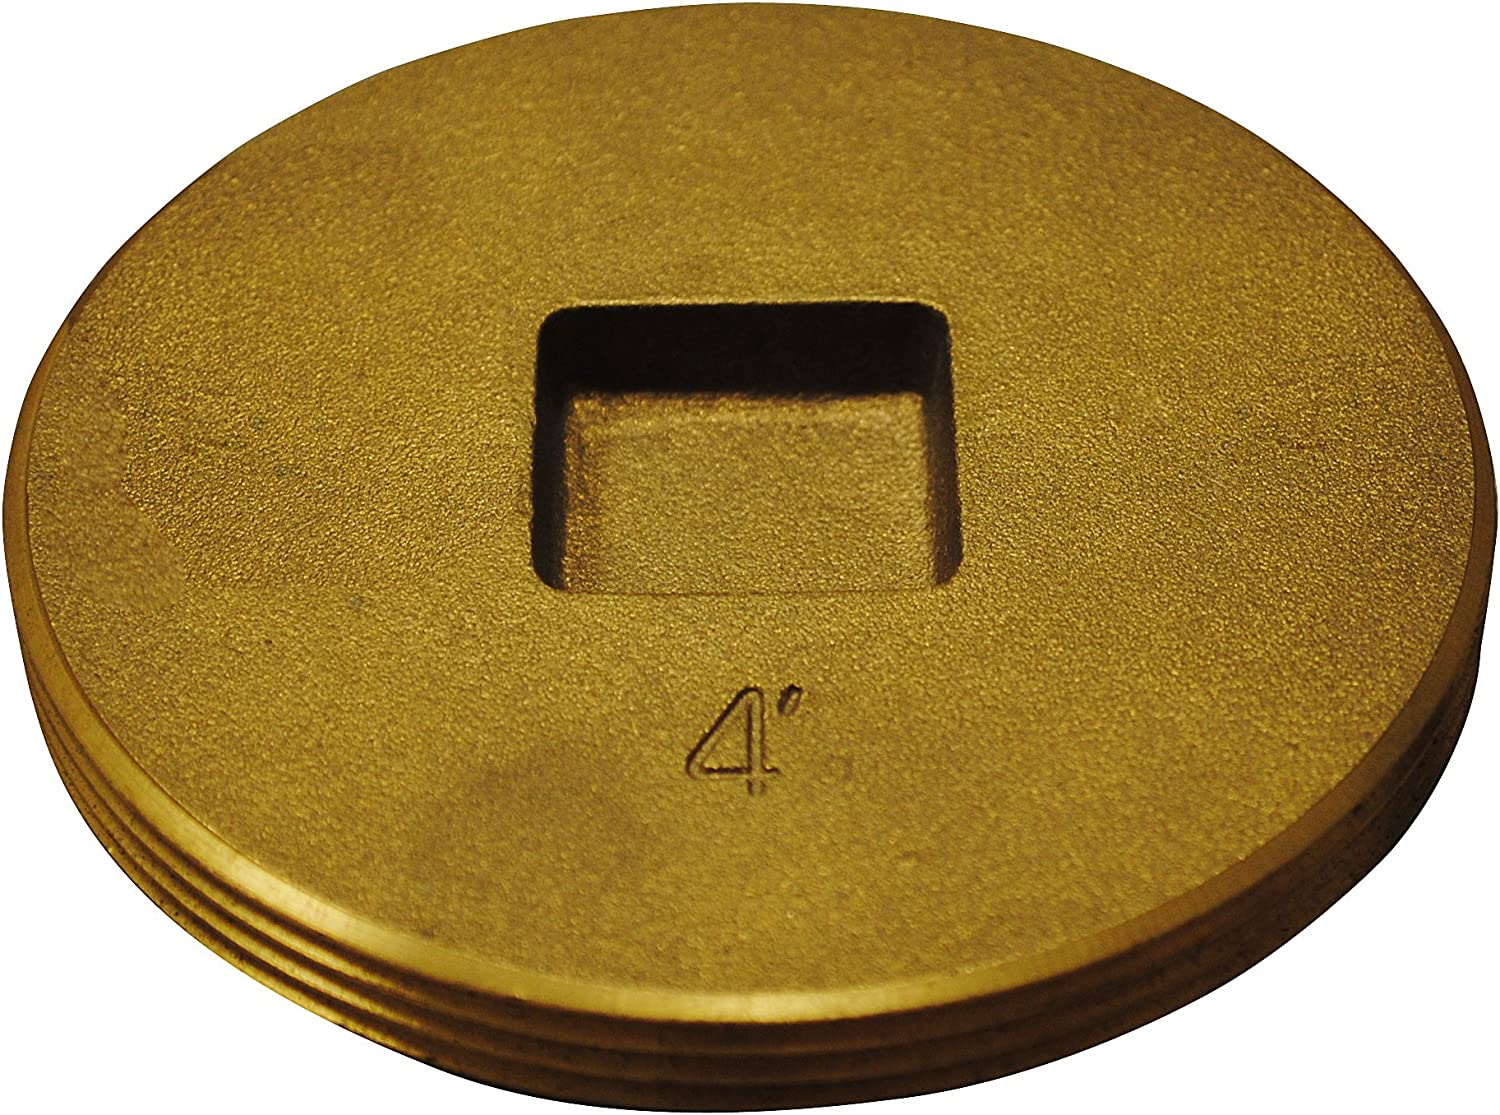 Oatey 42745 4 Easy-to-use in. Brass 4-Inch Cleanout Plug Recessed 25% OFF Head